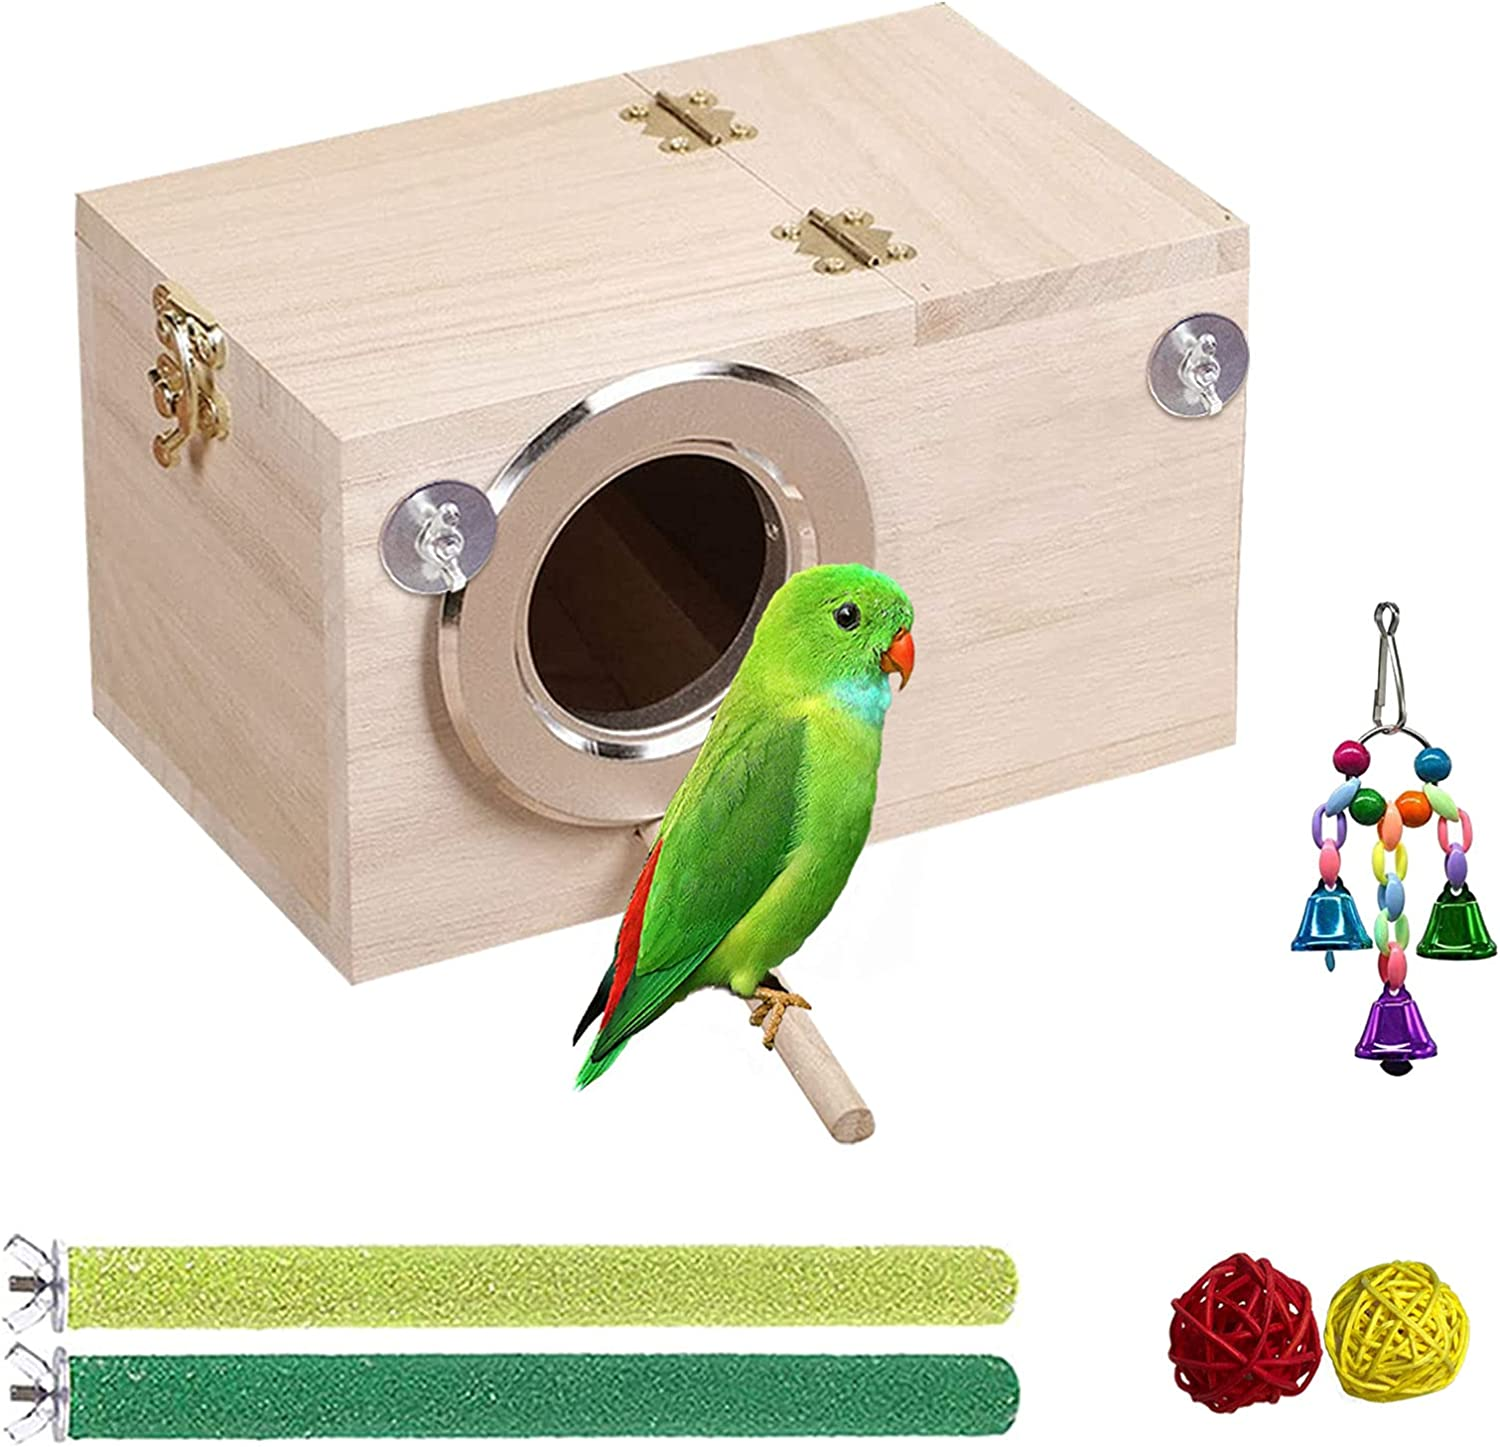 """Tfwadmx Parakeet Nesting Box Bird House Wood Breeding Nest Parrots Mating Box Perch Bell Toys for Lovebirds,Cockatoo,Budgie, Finch,Canary(9.8""""x5.1""""x5.1"""")"""